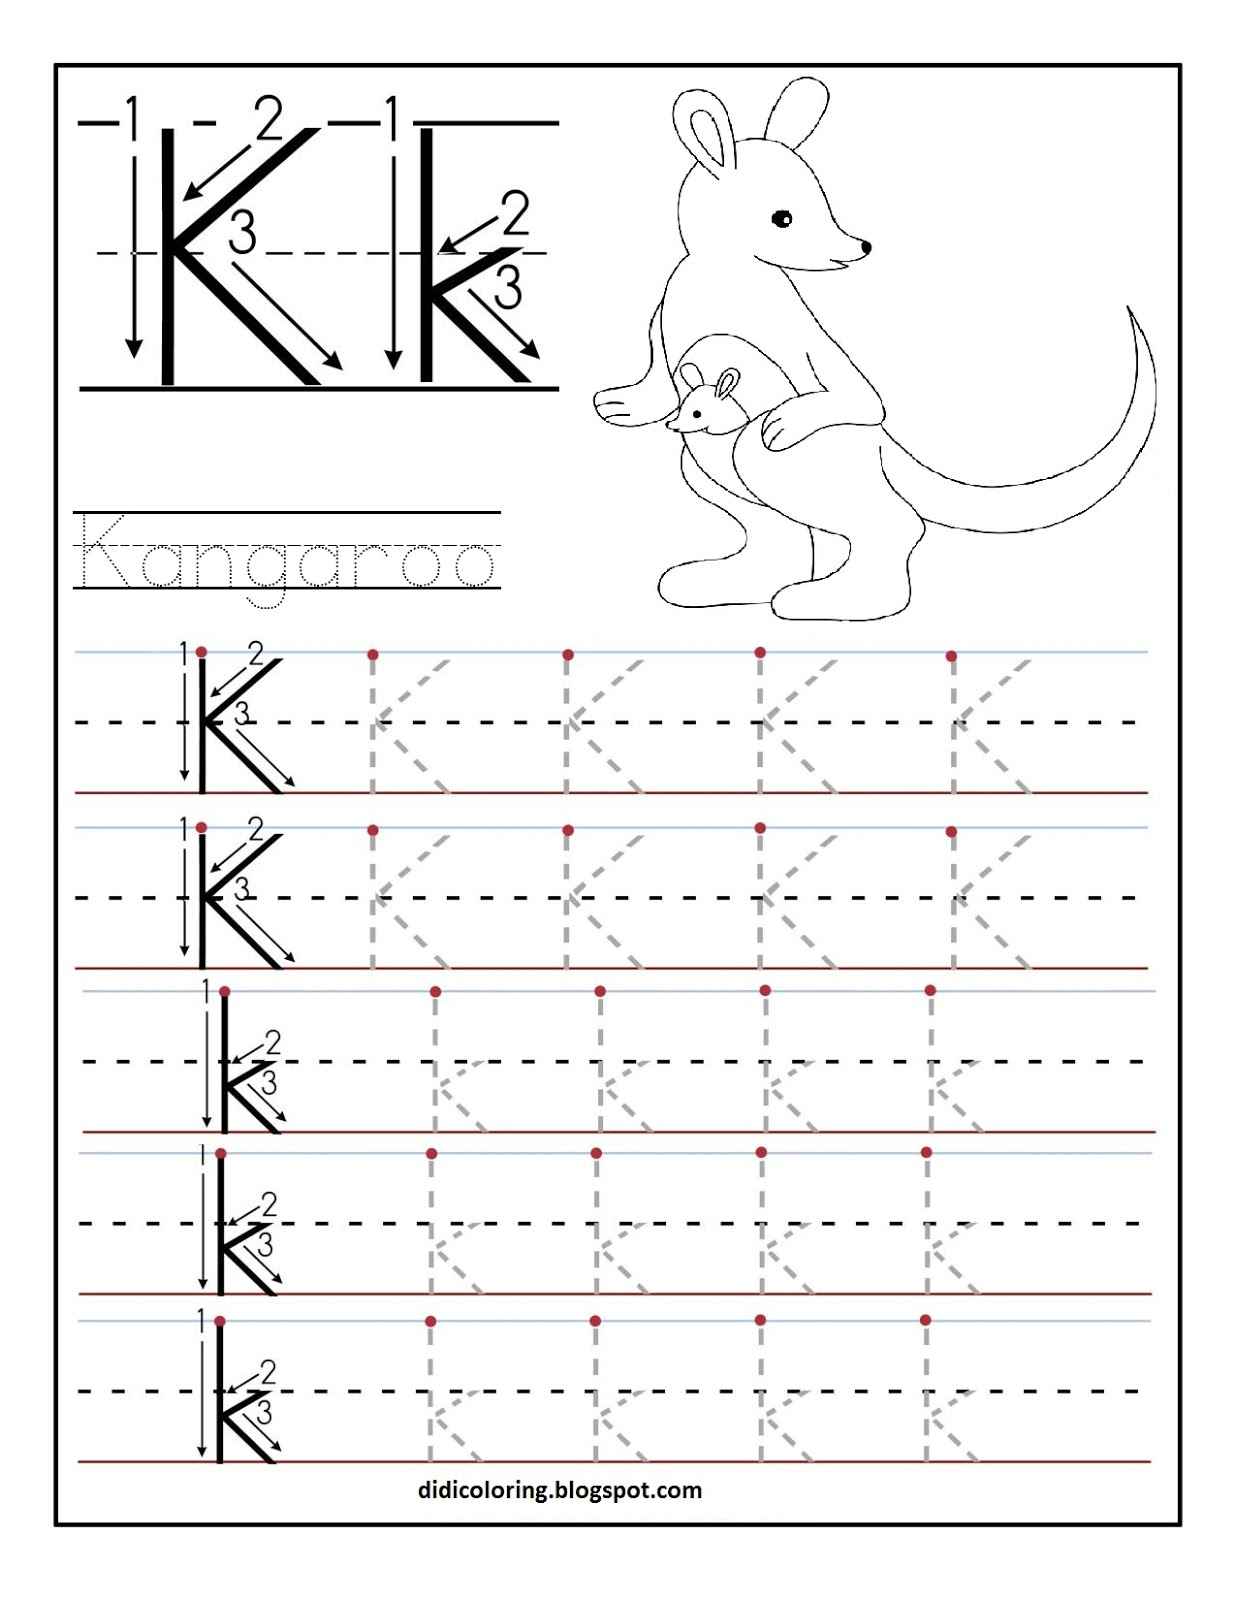 Free Printable Worksheet For Kids St For Your Child To